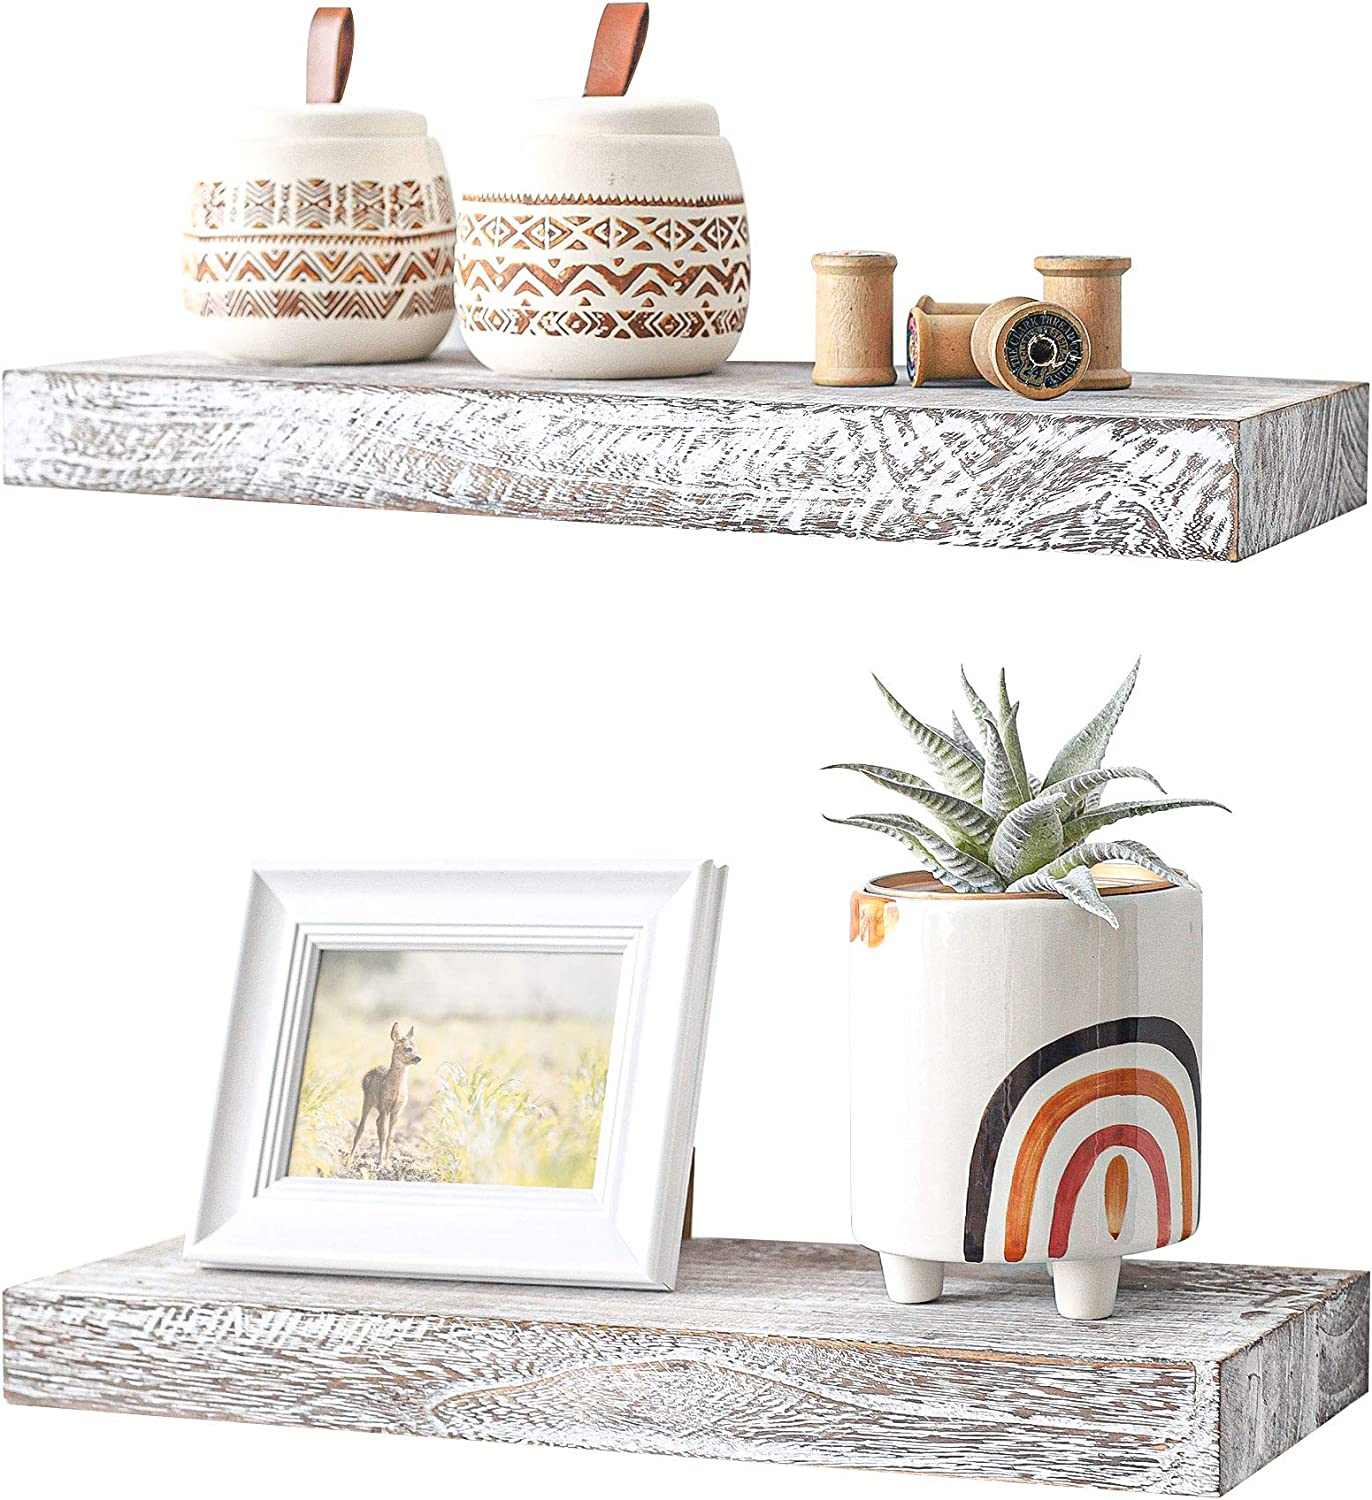 Challenge the lowest price of Japan Labcosi Farmhouse overseas Floating Shelves for Shel Rustic Wall 17 Inch